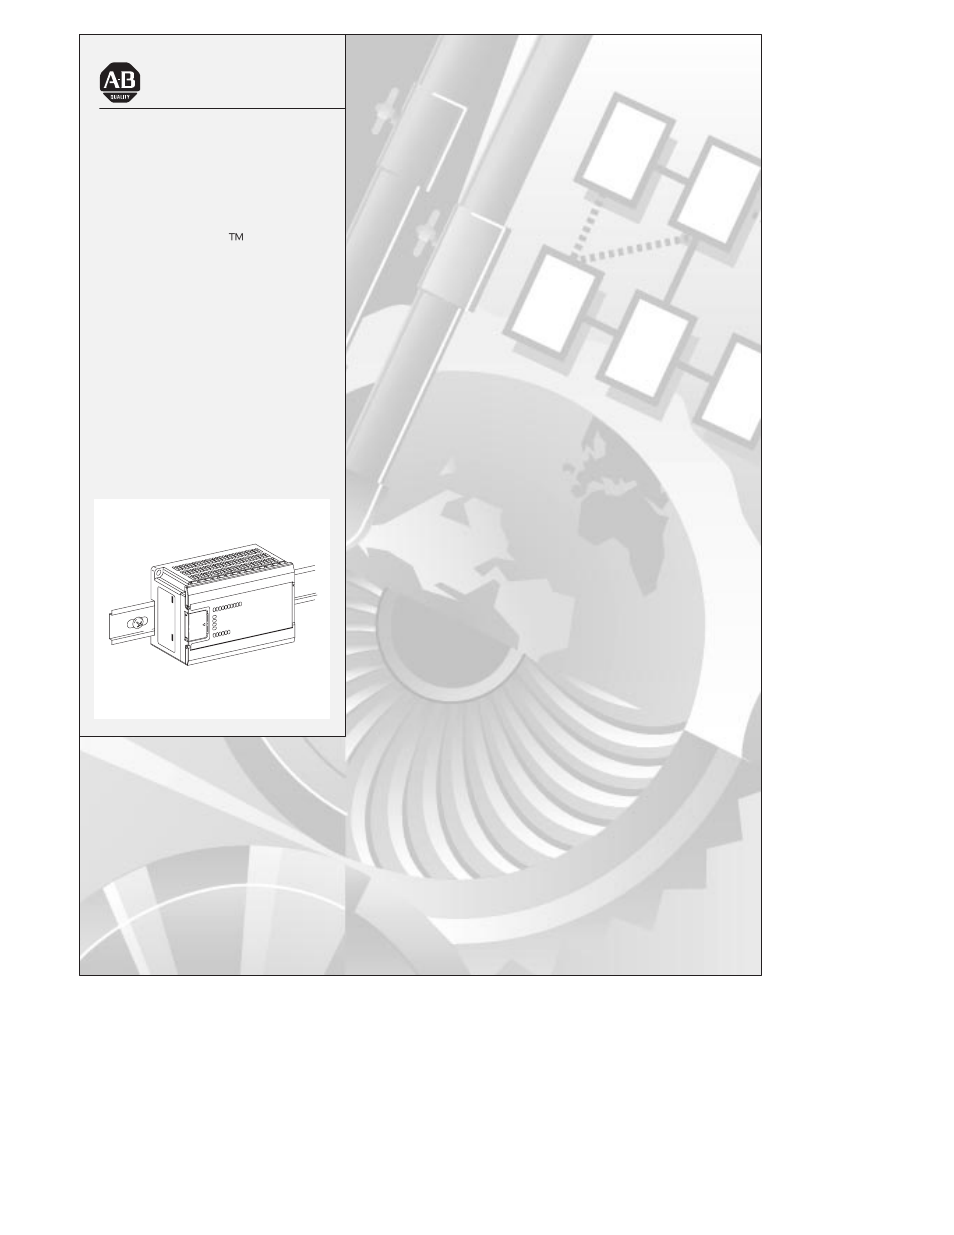 Awesome Allen Bradley Micrologix 1000 Manual Gift - Wiring Diagram ...